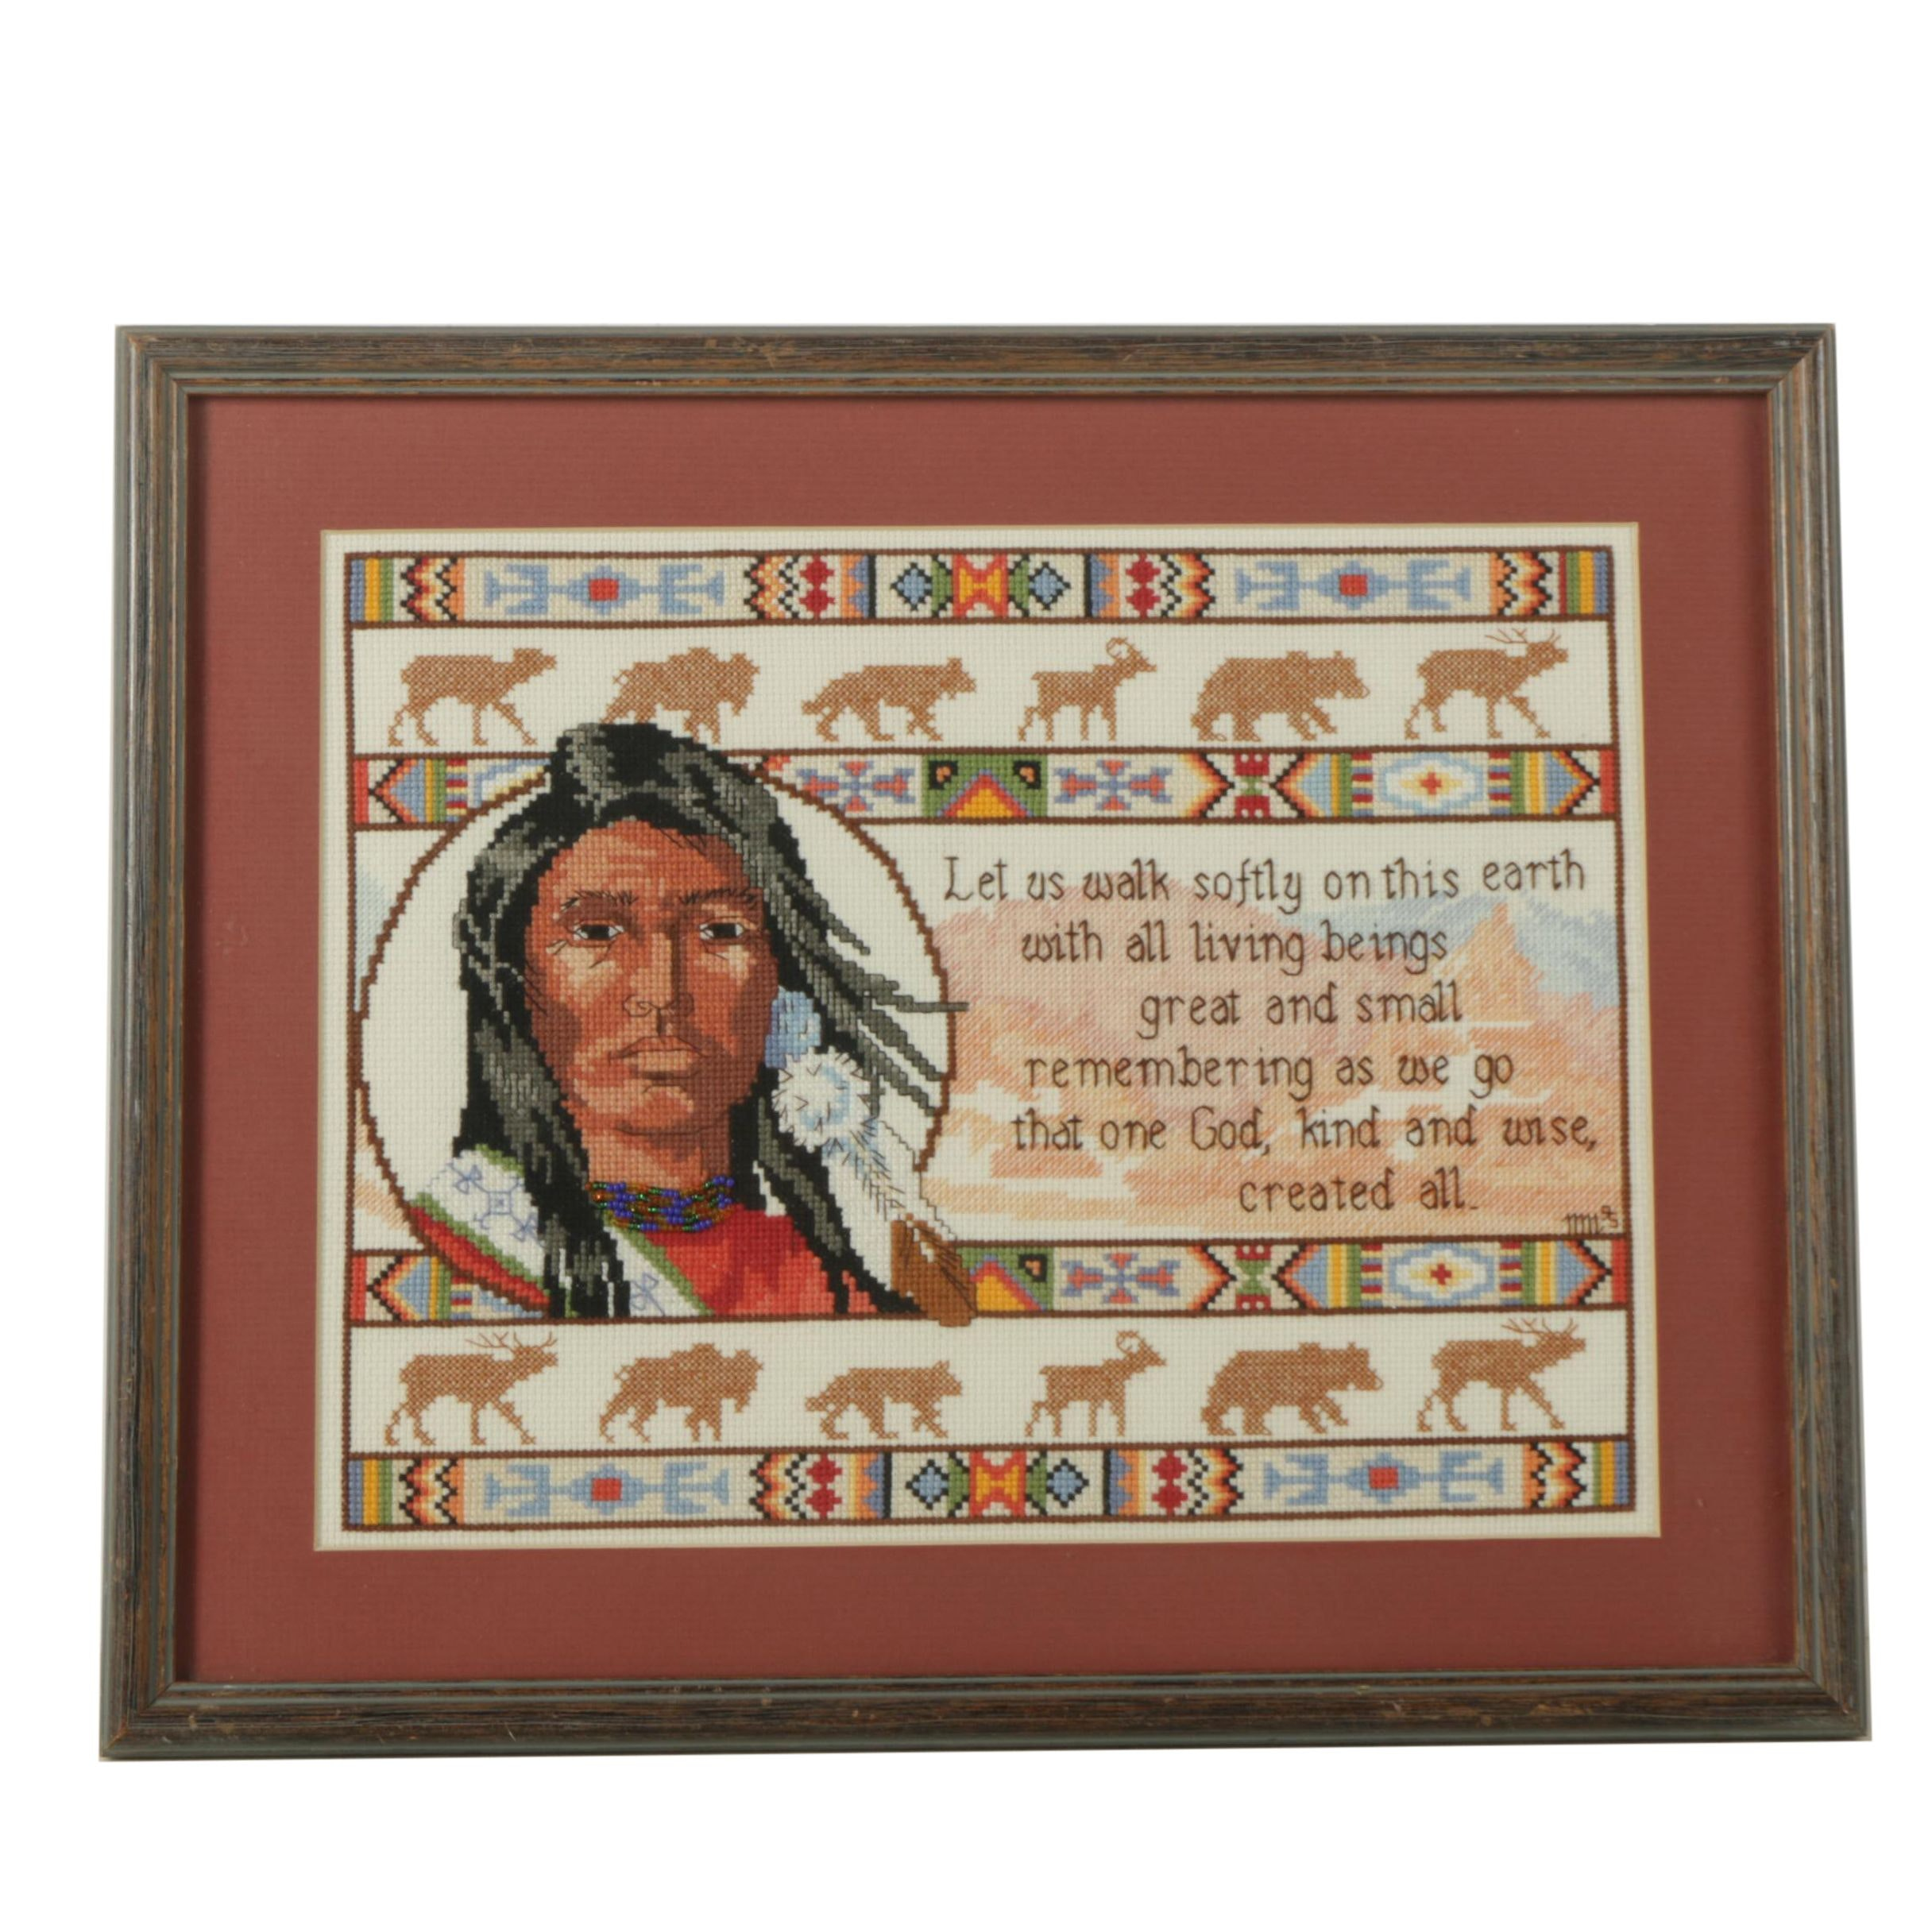 Cross-Stitch Embroidery with Native American Theme